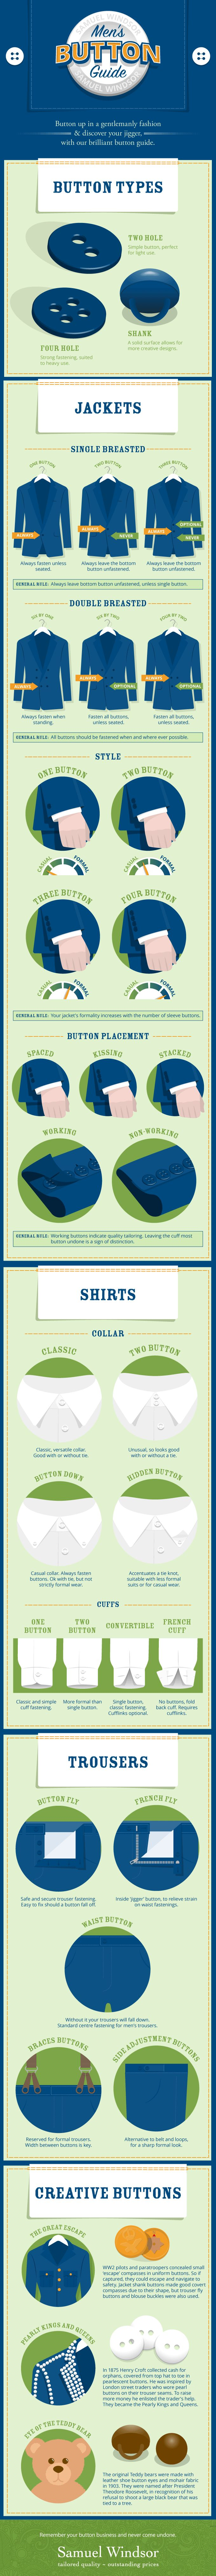 Check our our brilliant mens button guide infographic! Filled with fun menswear tips and information, you'll be the master of all men's clothing knowledge.